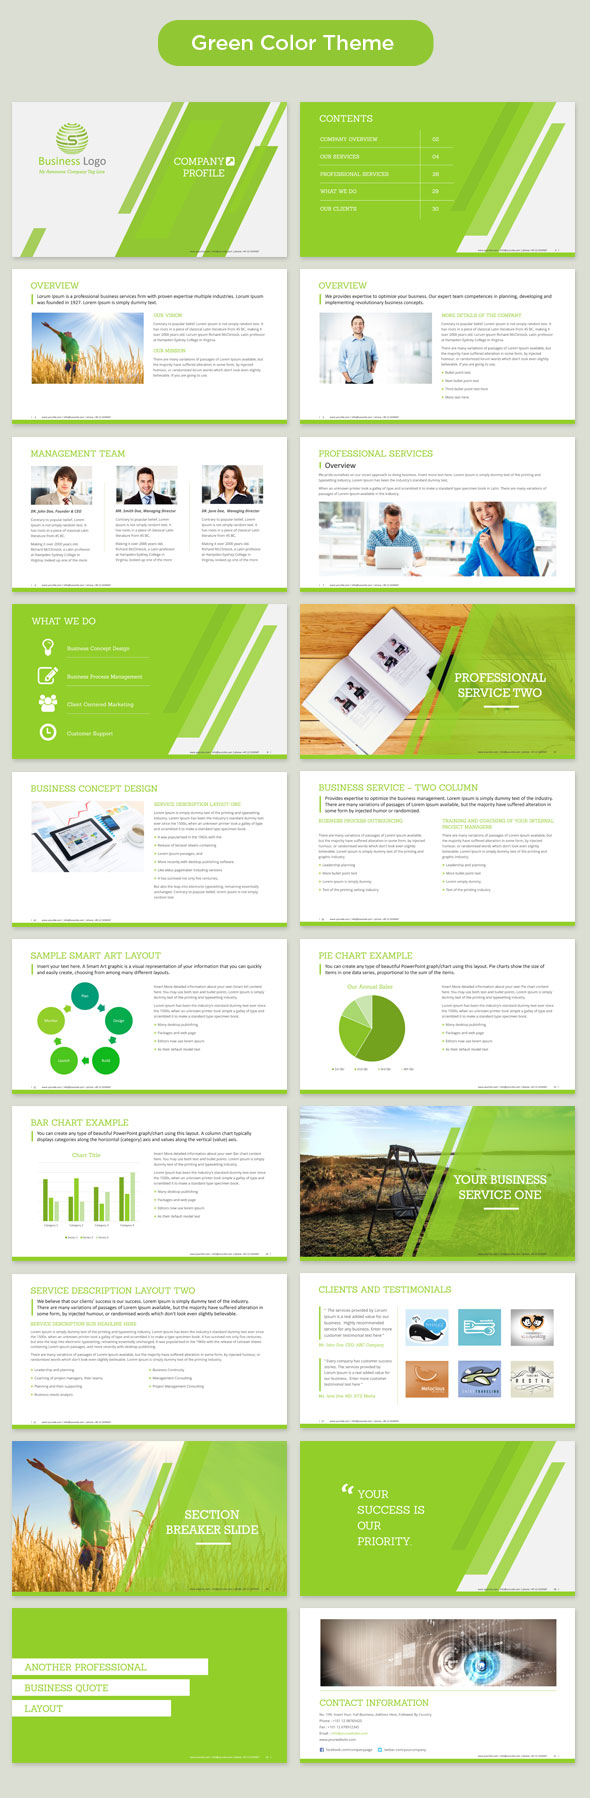 Company Profile PowerPoint Template 350 Master Slide Templates – Format of Company Profile